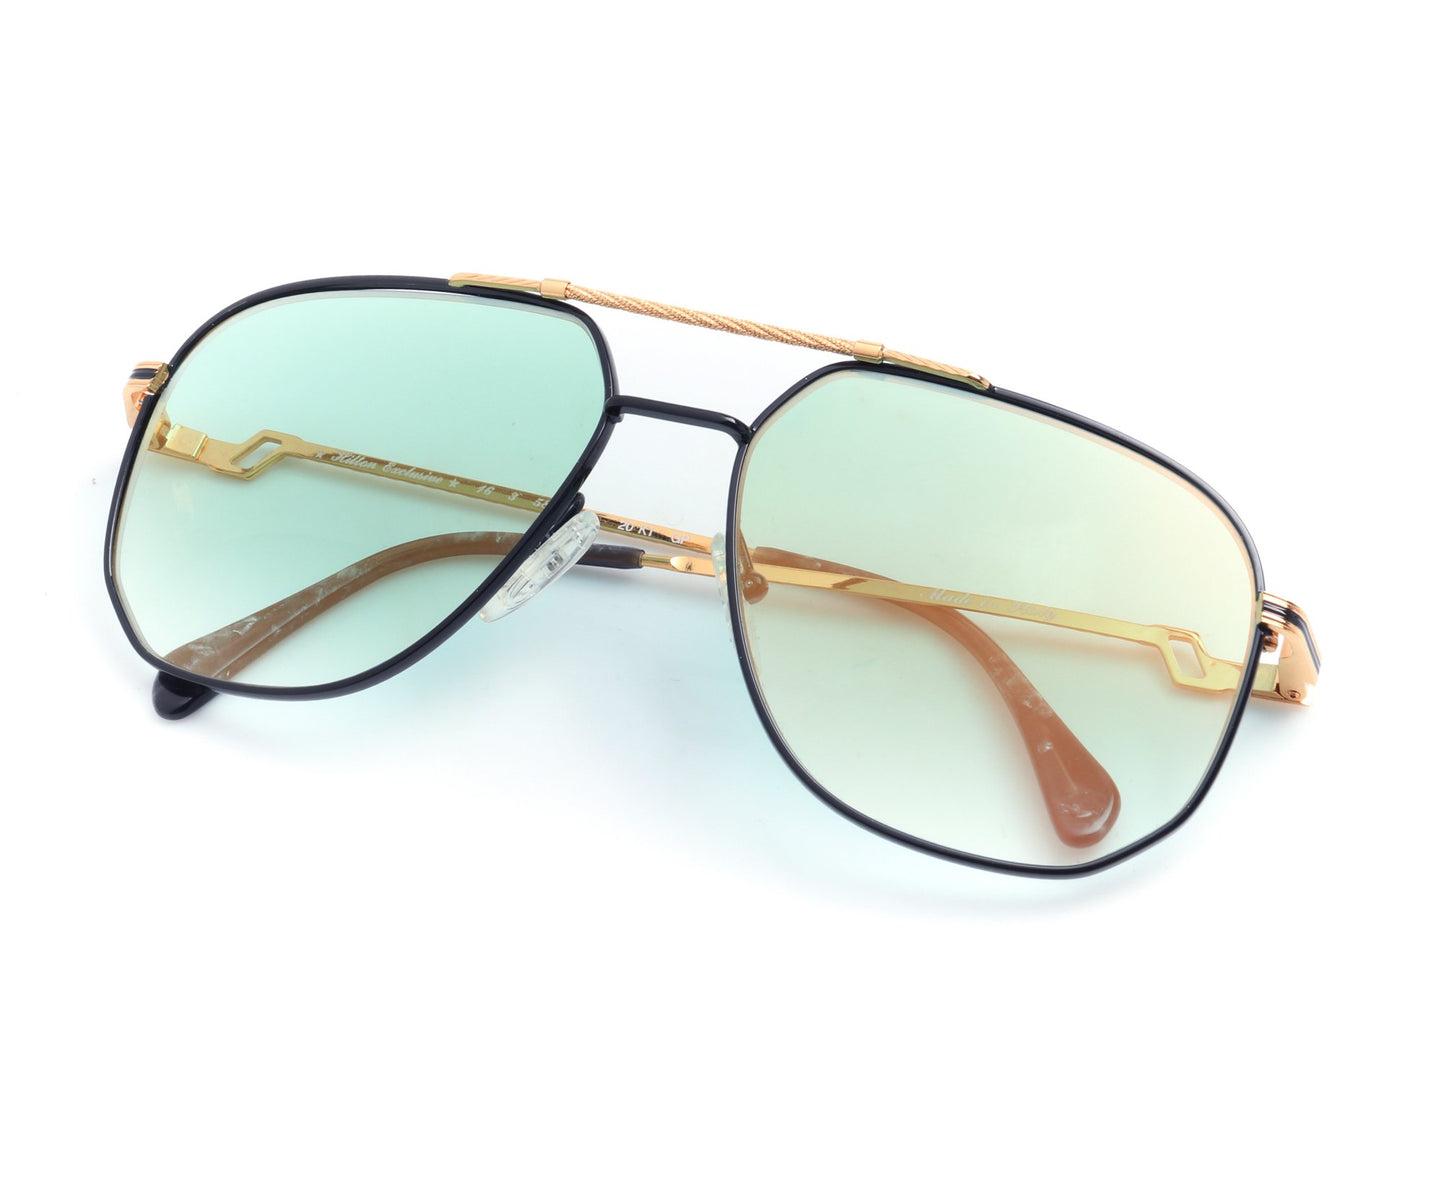 Hilton Exclusive 16 3 20KT Gold Plated (Teal Gradient), Hilton , glasses frames, eyeglasses online, eyeglass frames, mens glasses, womens glasses, buy glasses online, designer eyeglasses, vintage sunglasses, retro sunglasses, vintage glasses, sunglass, eyeglass, glasses, lens, vintage frames company, vf